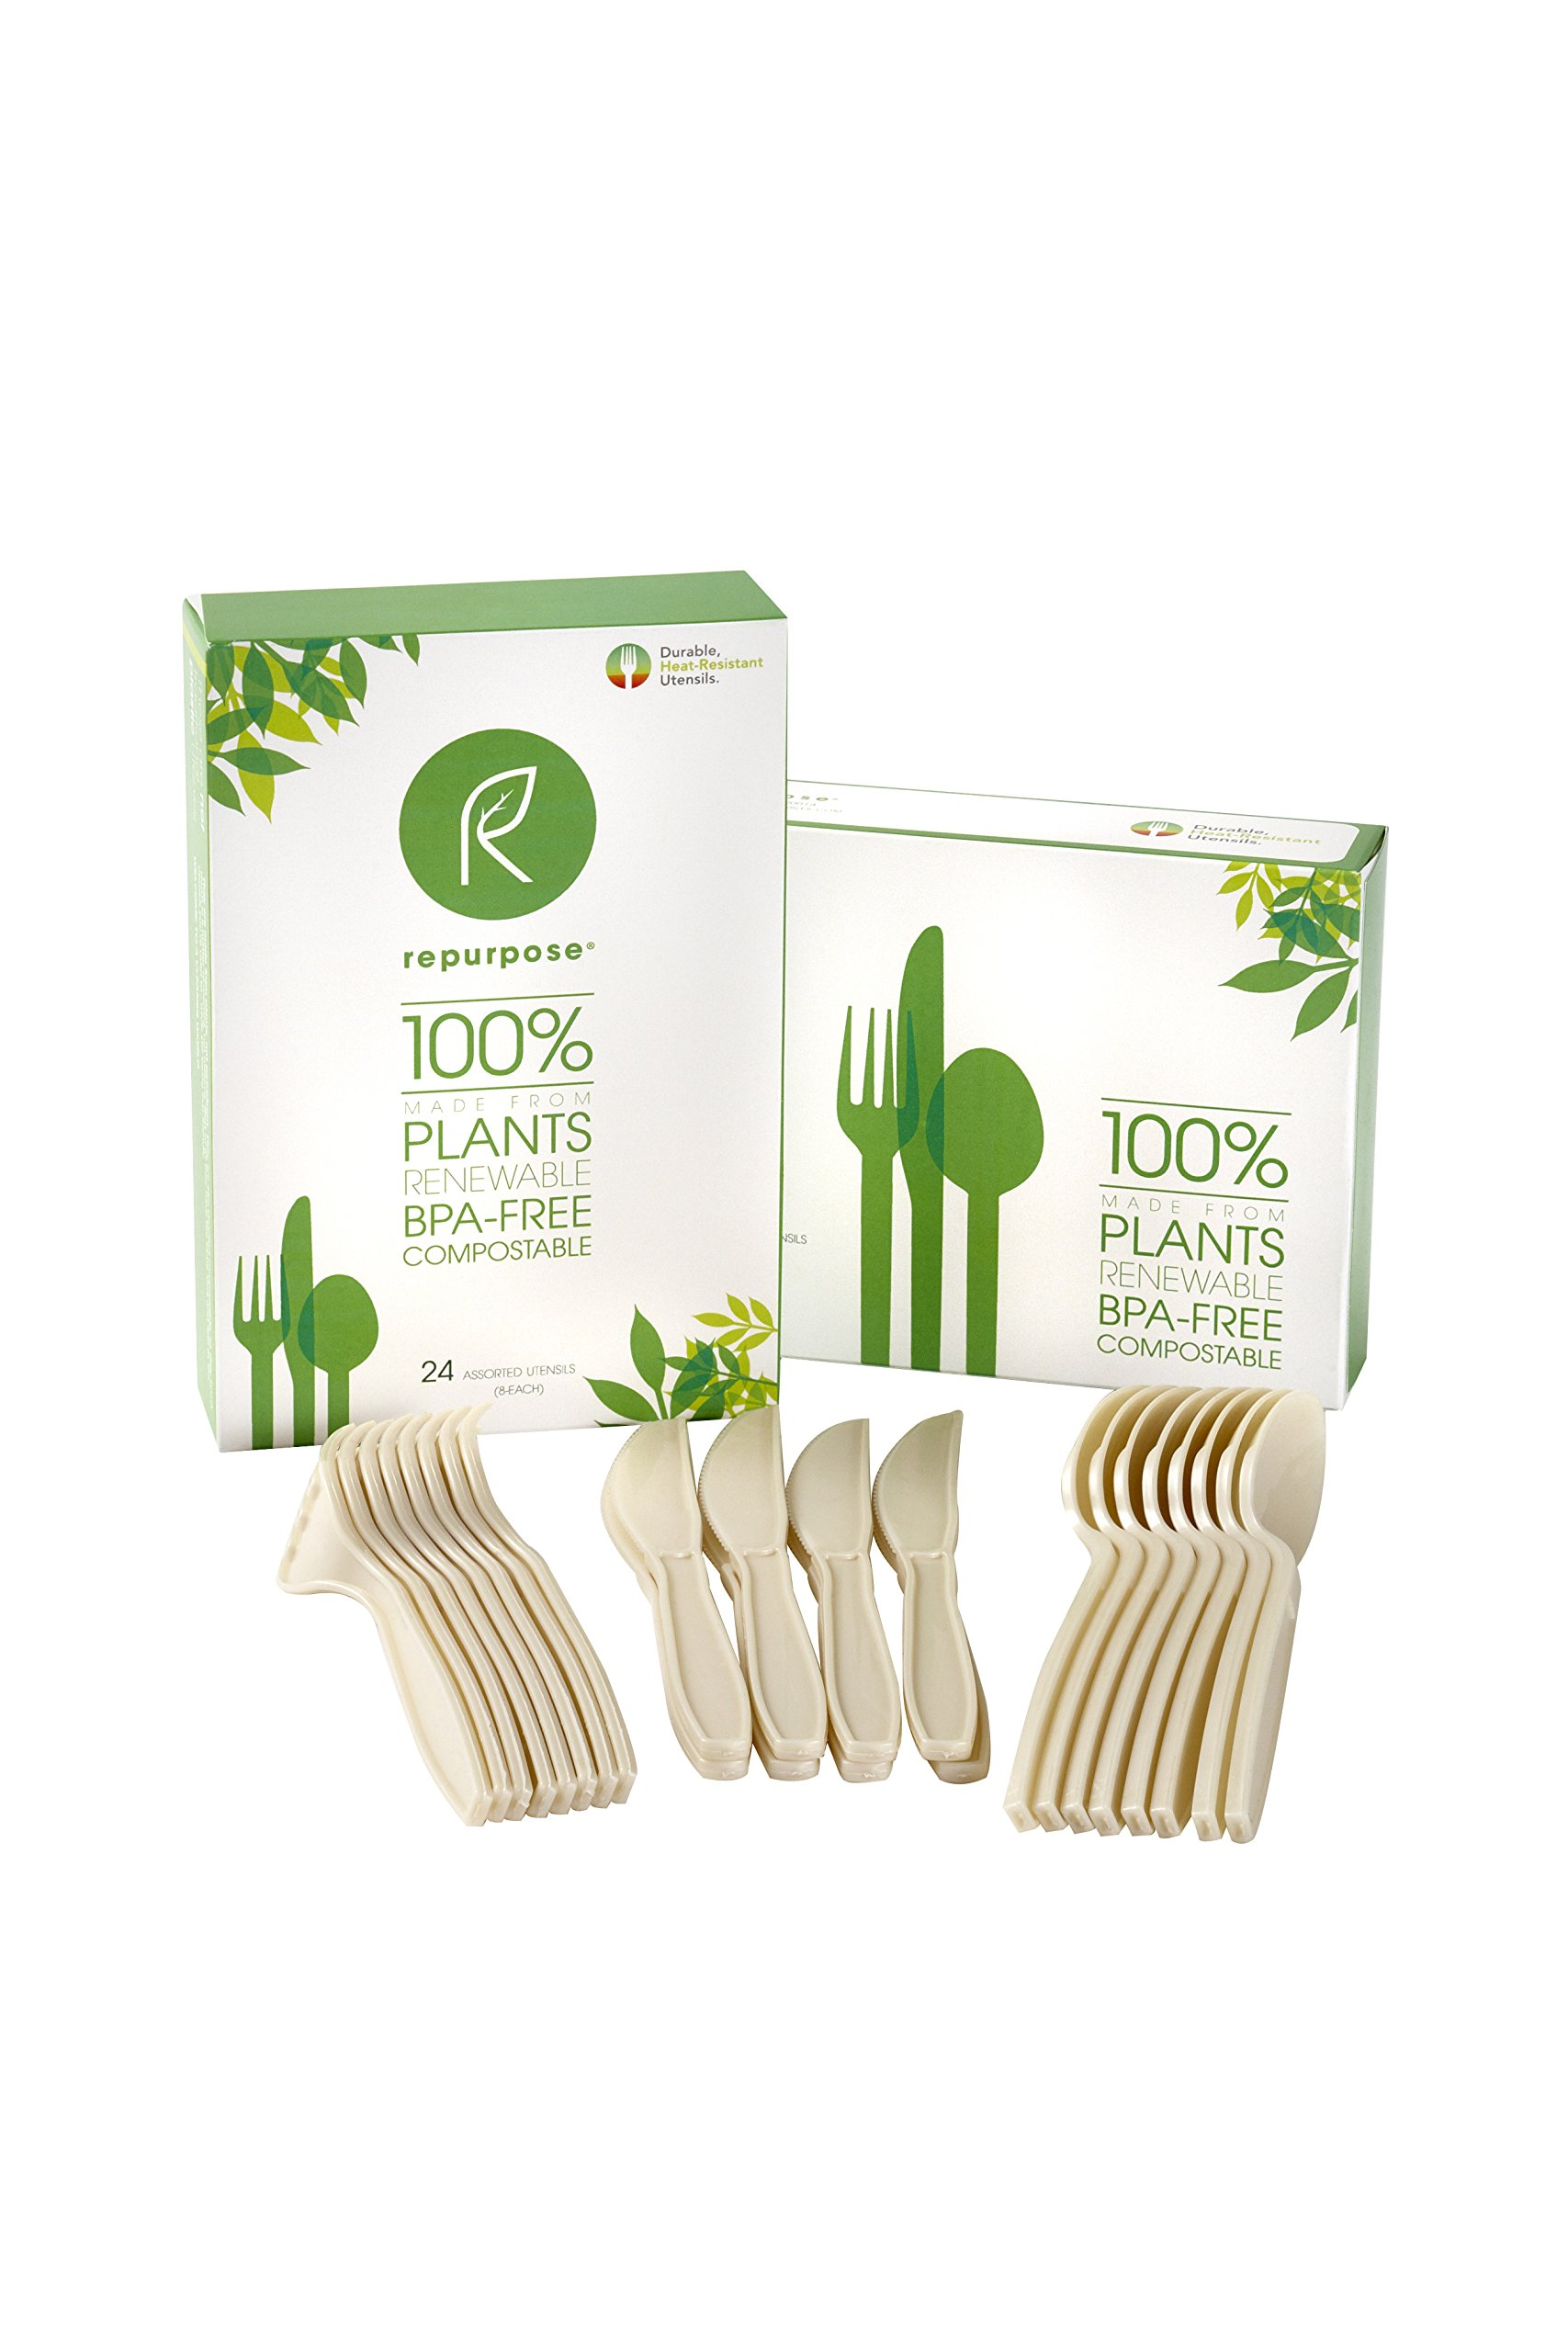 Repurpose 100% Compostable Plant-Based High Heat Utensils Combo Set (480 Count)